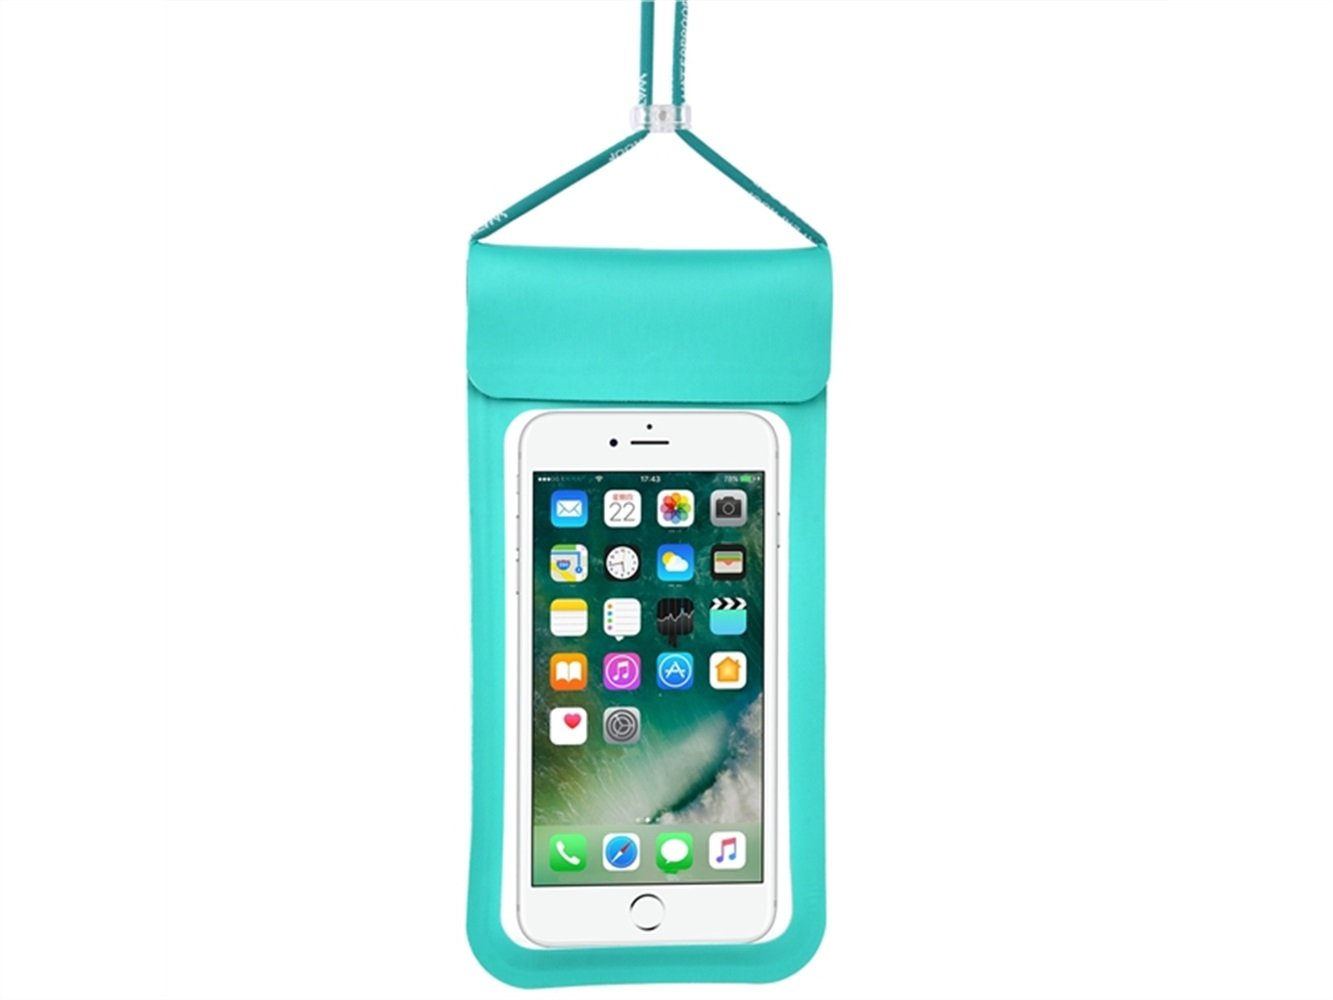 Wesource Good Protecter Portable Lanyard Waterproof Phone Bag Outdoor Beach Mobile Diving Bag for All Smartphones Up To 6.5 Inch(Blue)